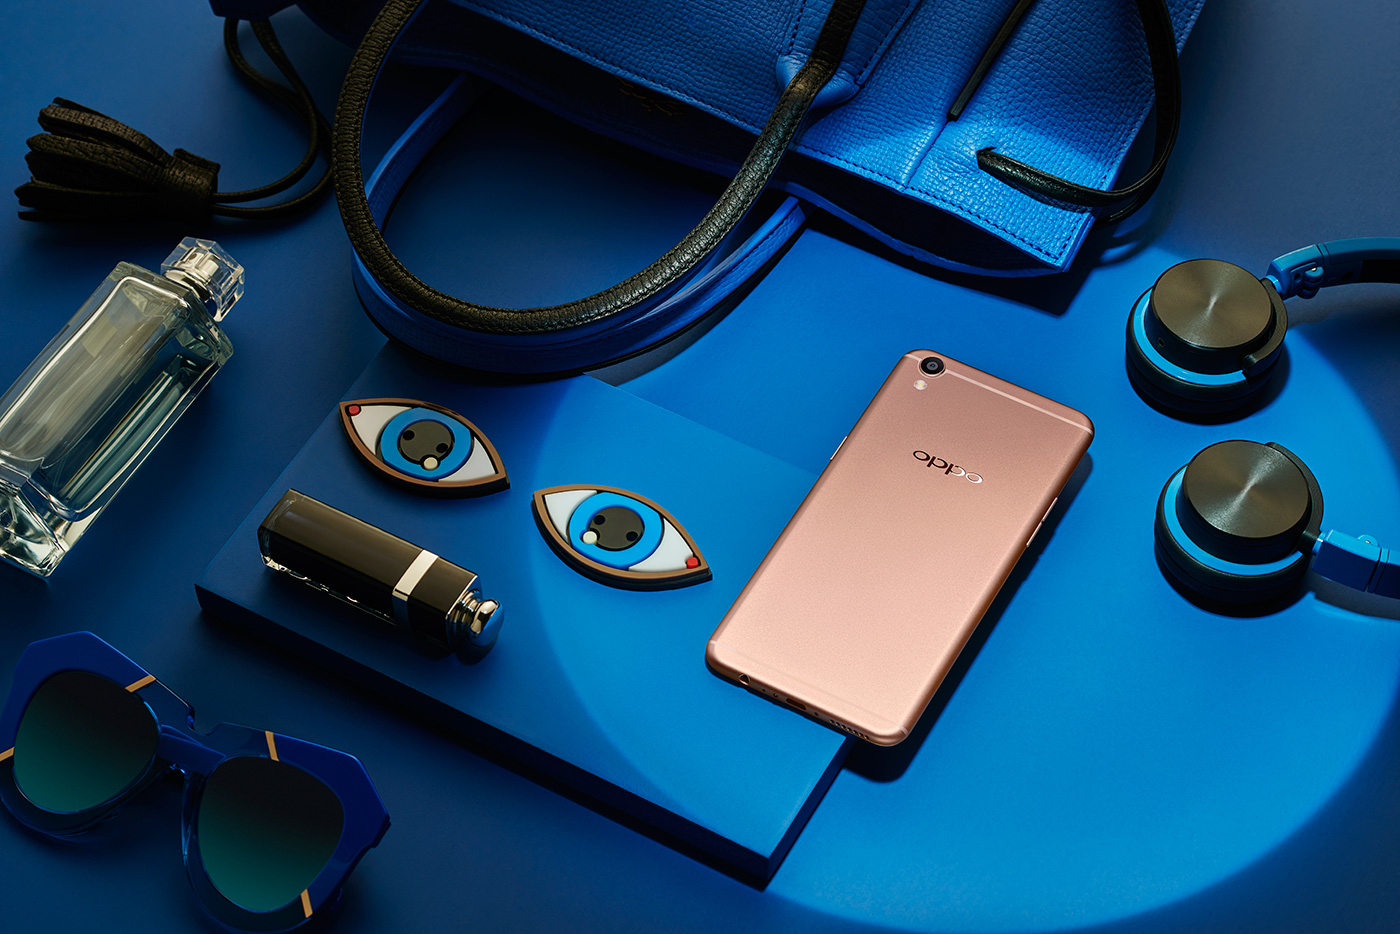 Oppo R9 is a fancy mid-range phone for selfie addicts